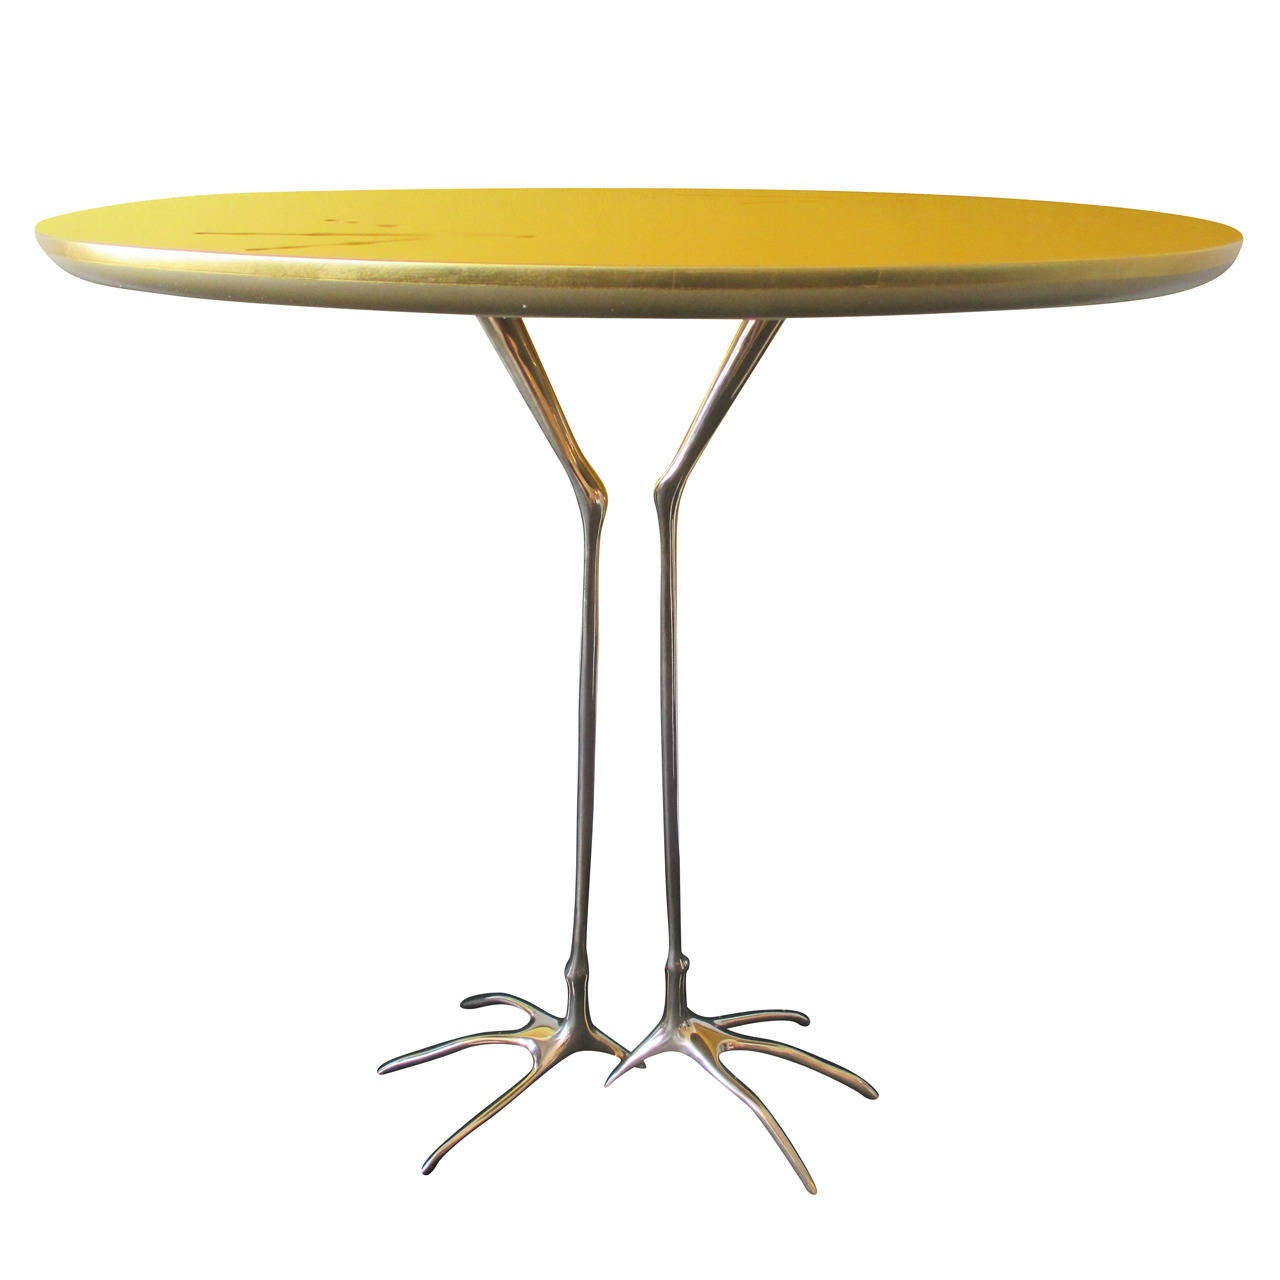 Small table gold leafed w brass legs by meret oppenheim at for Small gold side table